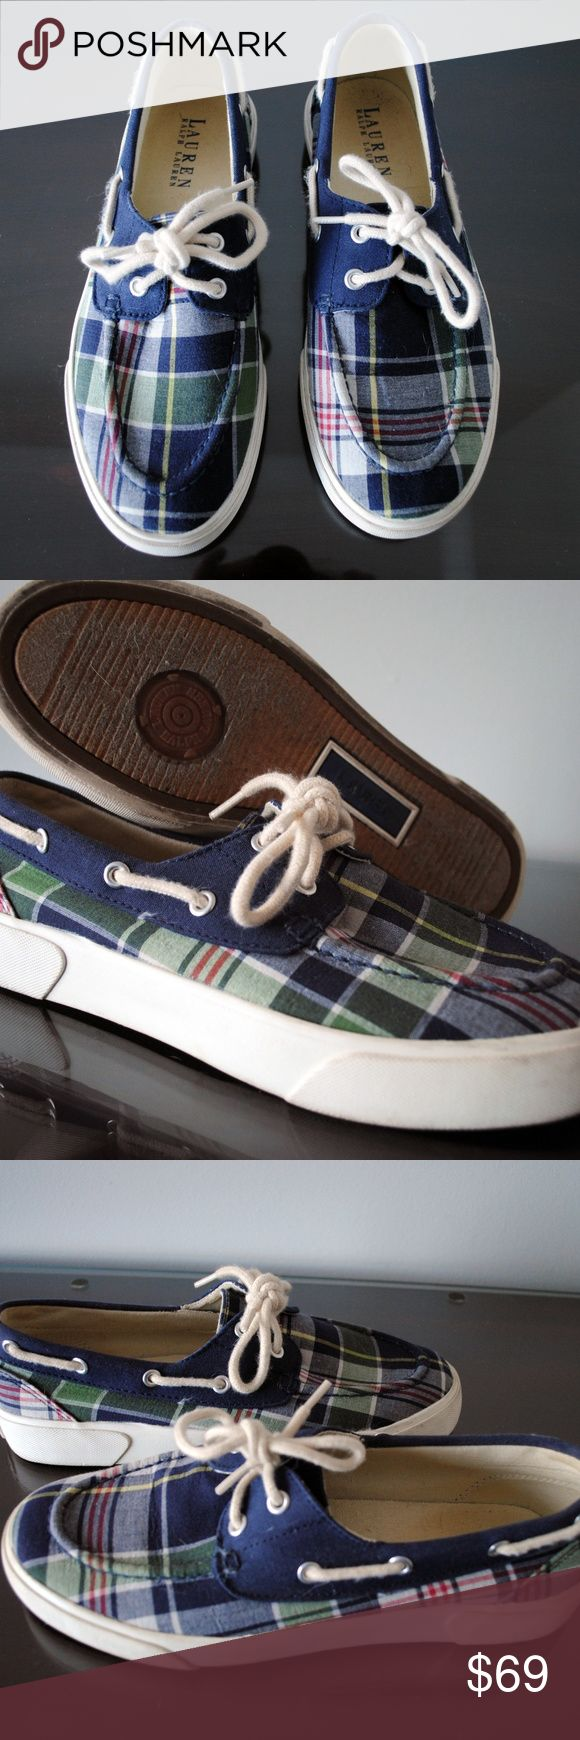 Women's Lauren Ralph Lauren Sperry Shoes For sale is a pair of Women's Ralph Lauren Sperrys size 7M. They are in great condition no rips, tears, holes, and minimal creasing. Gum bottom will not leave scuff marks. The colorway has been discontinued and will not be found in stores. Don't miss your opportunity to purchase these shoes they'll make a wonderful addition to your collection. Guaranteed authenticity from a trusted seller i have 100% feedback on ebay in addition to good feedback on…